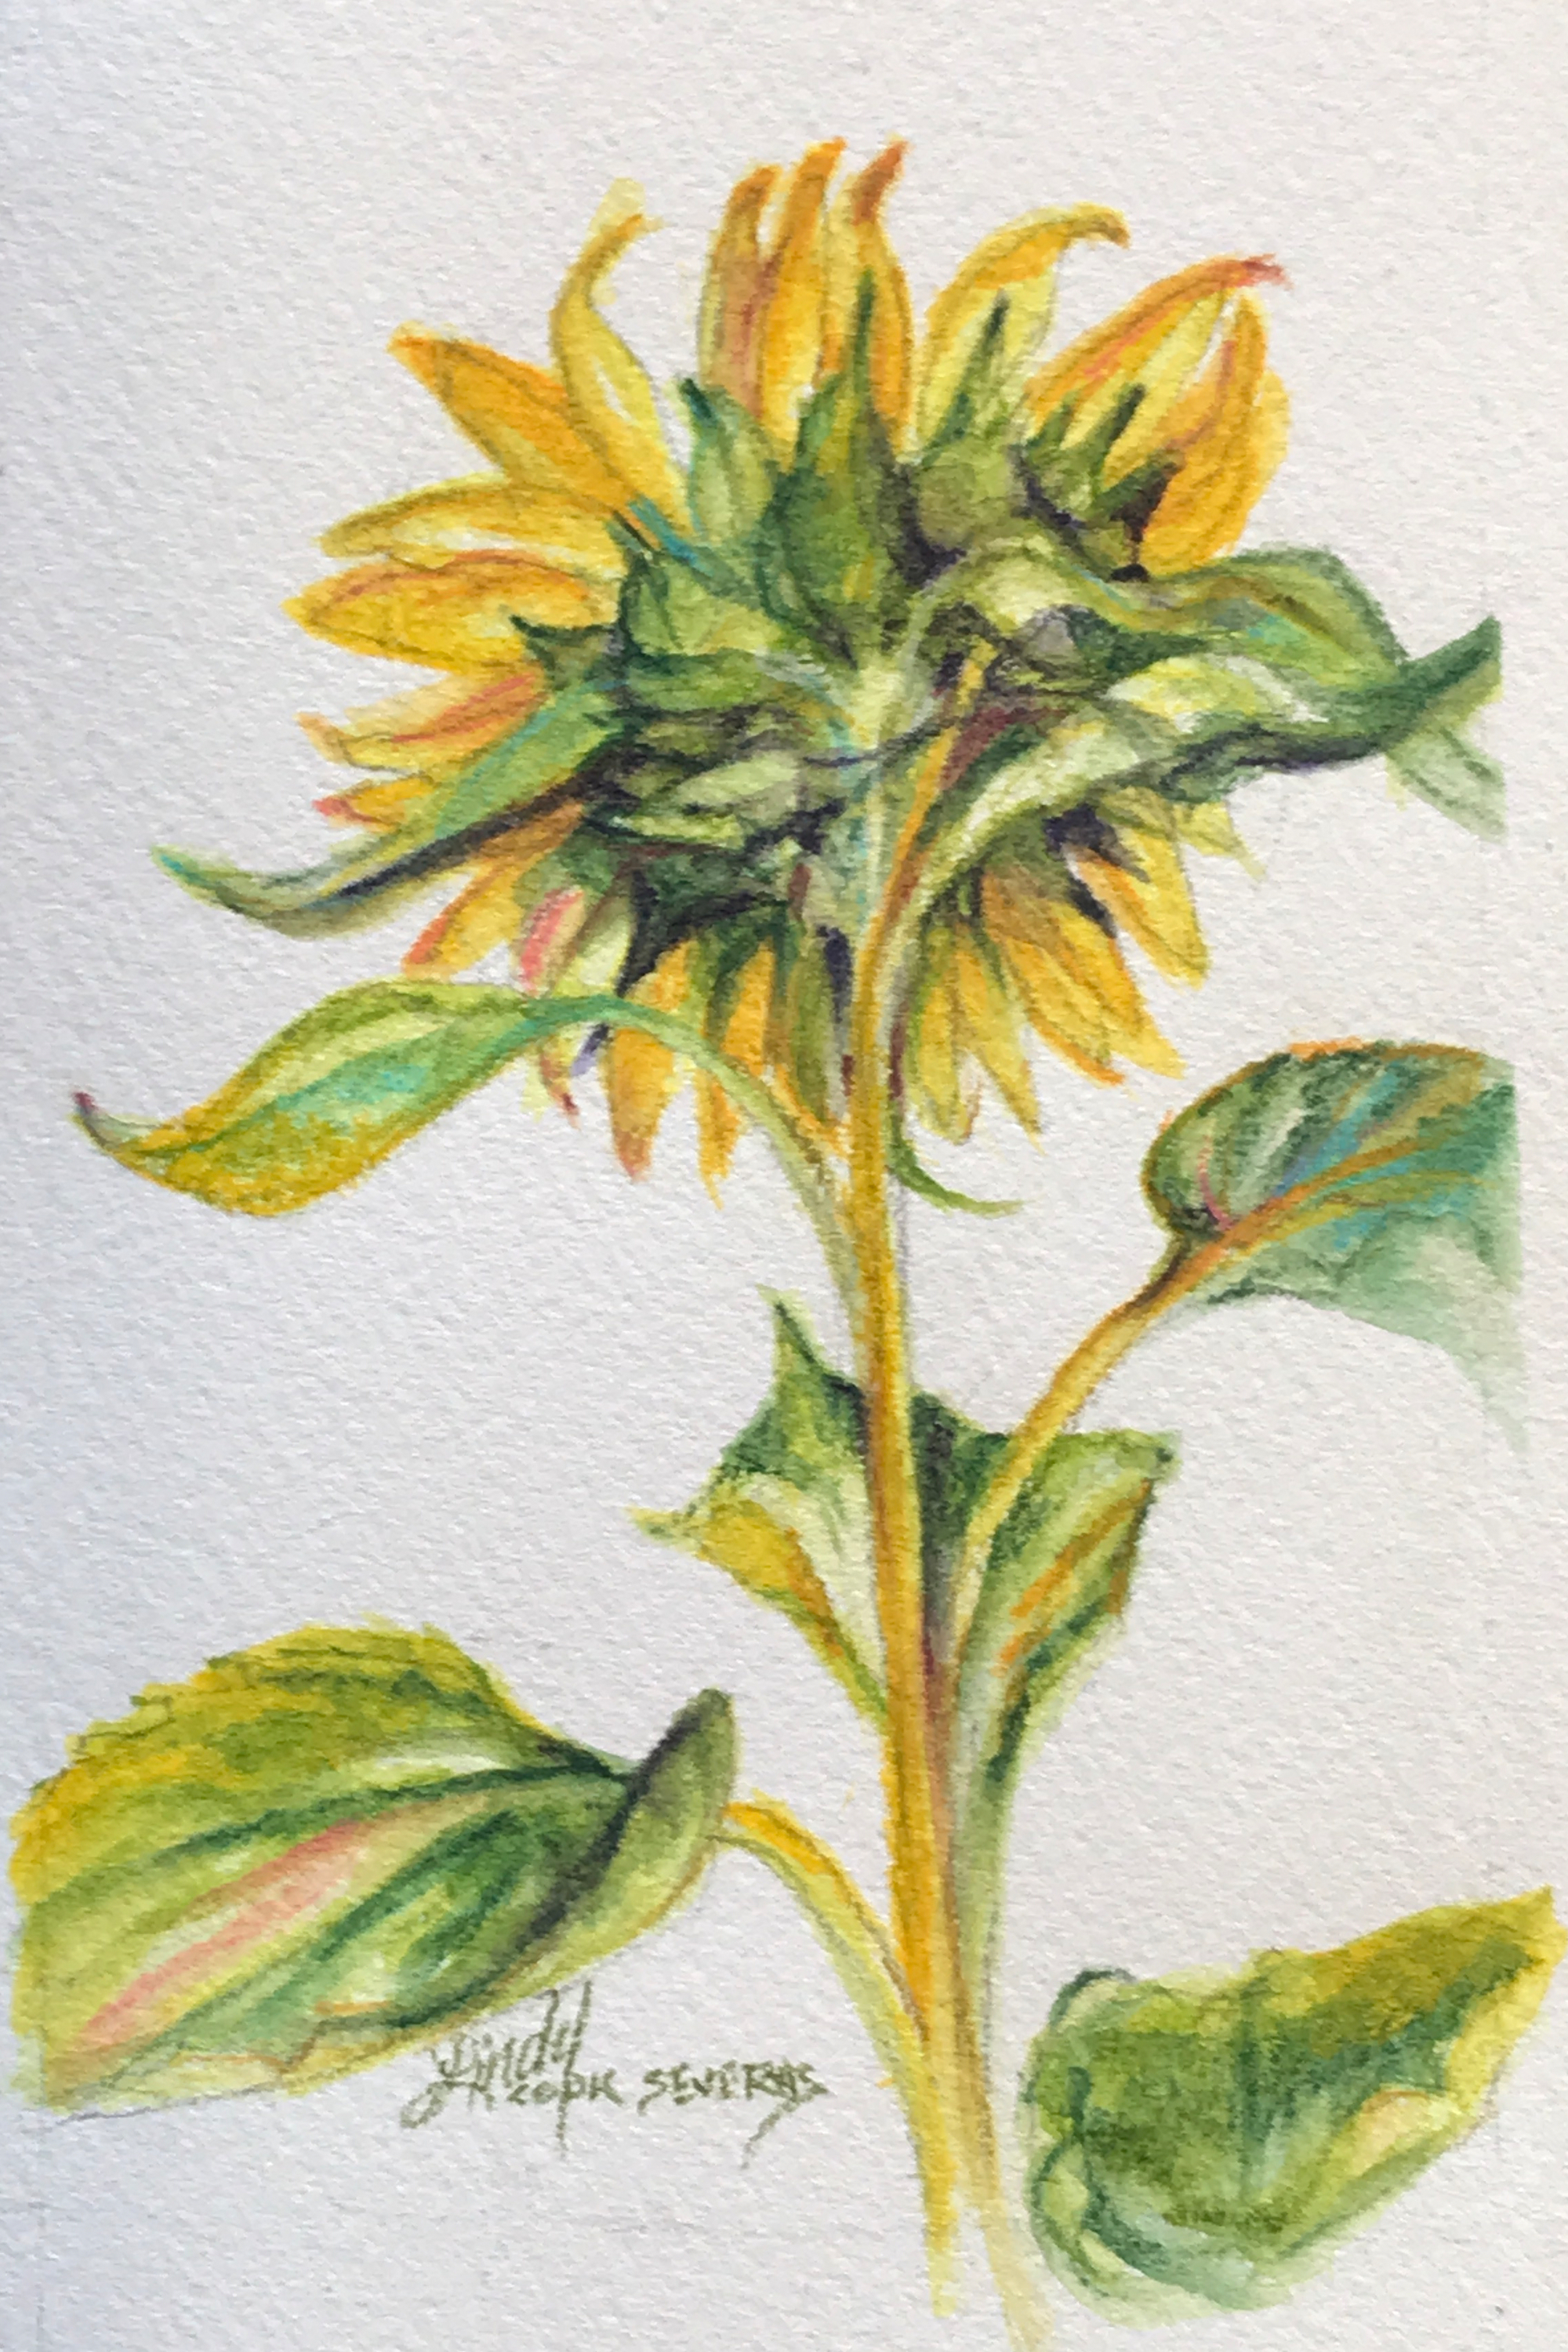 Shy sunflower 6x4 watercolor lindy c severns kt5czm